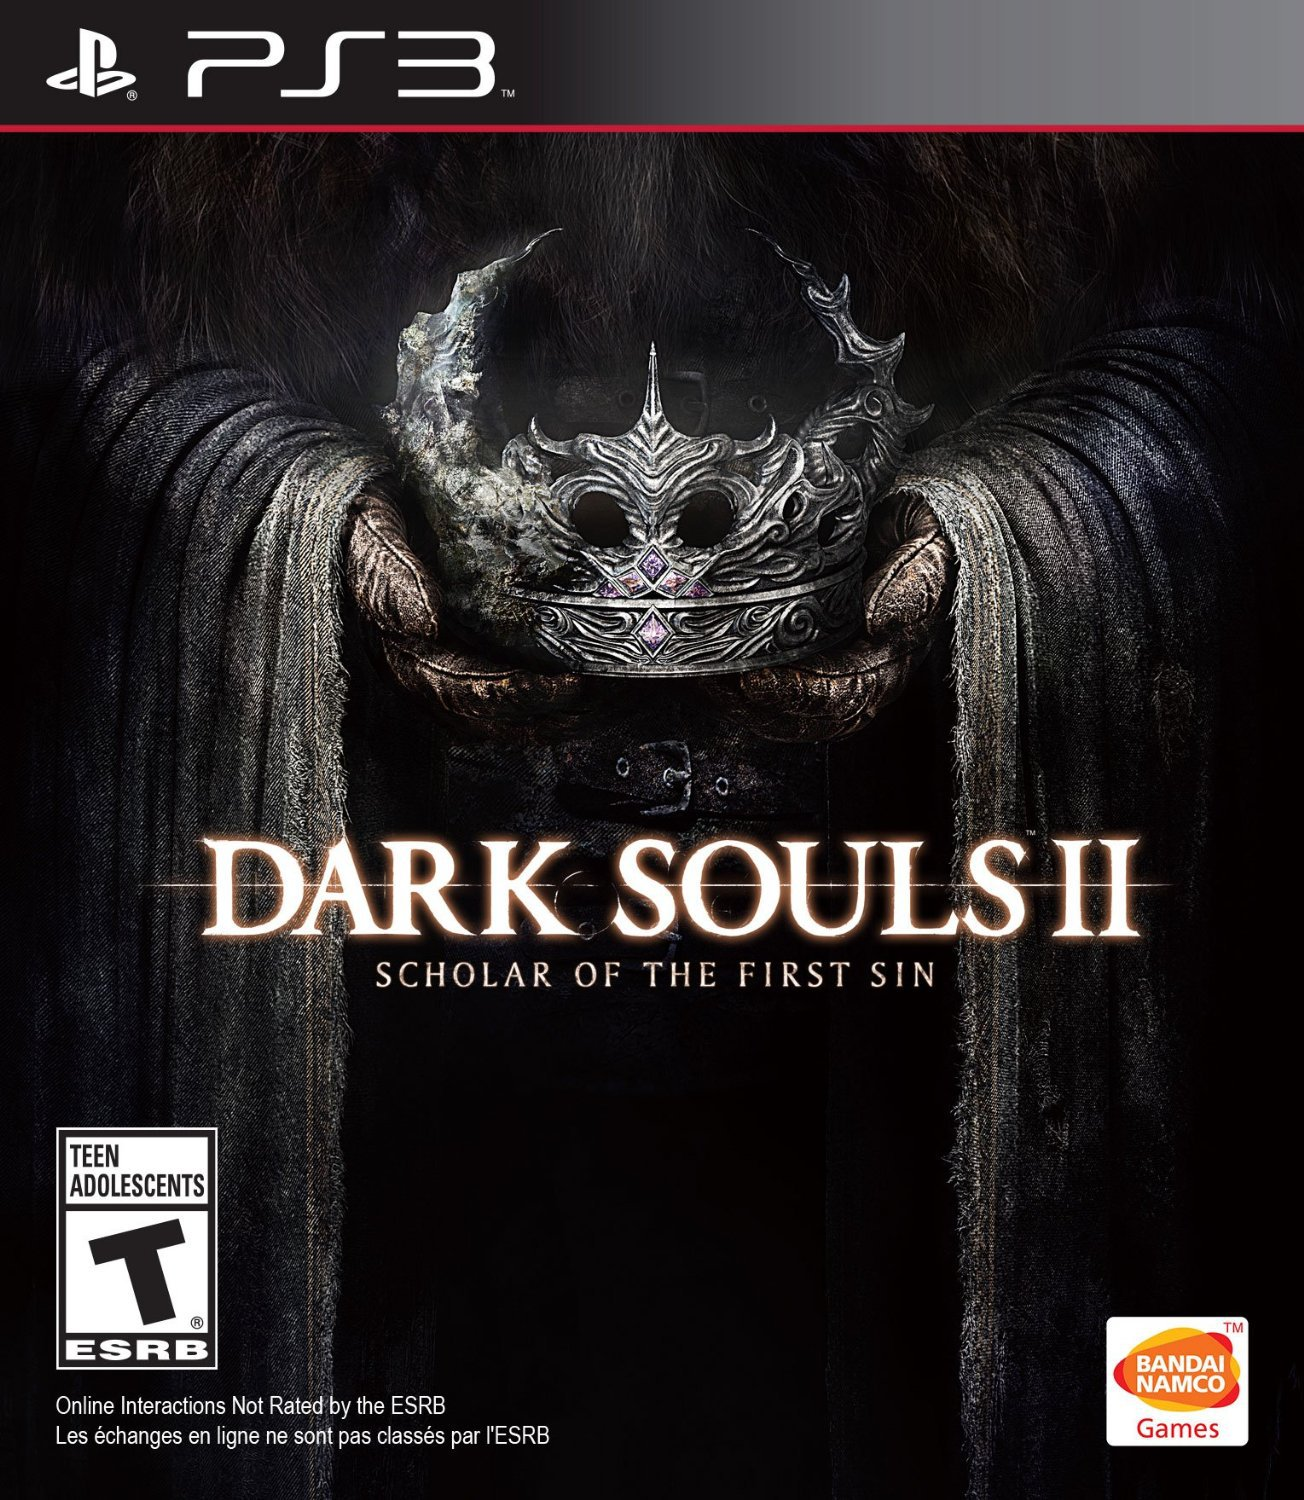 Dark Souls II: Scholar of the First Sin PS3 Physical Game Disc US